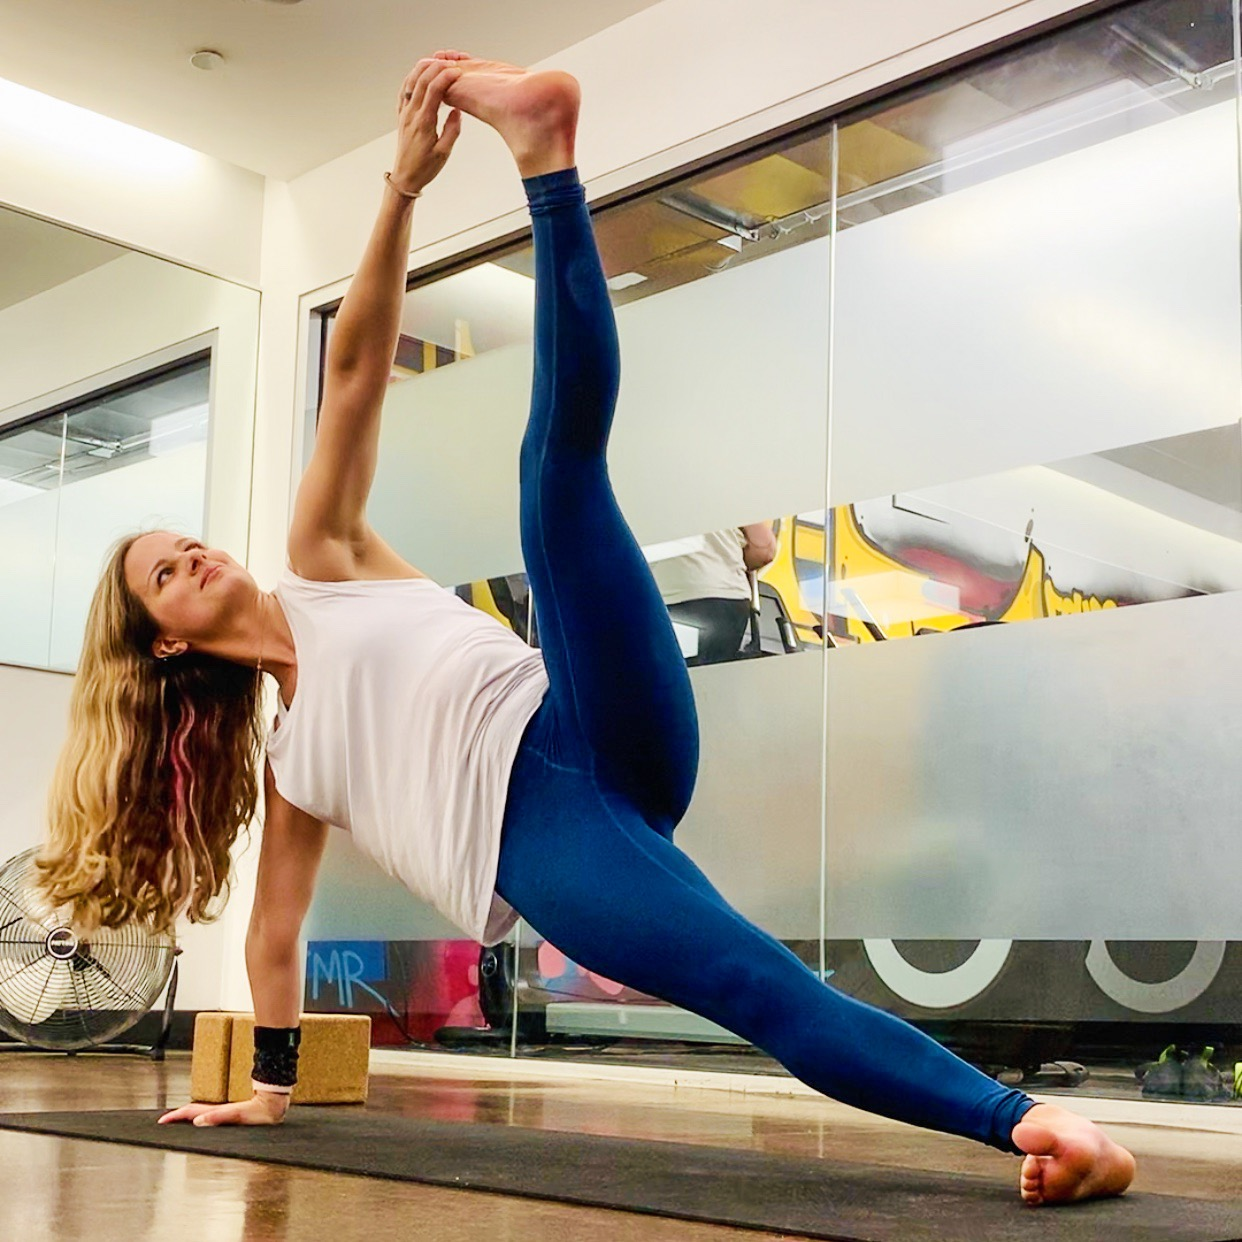 Studio Classes - I have experience teaching a range of yoga styles, in gyms, yoga studios, and other public locations.